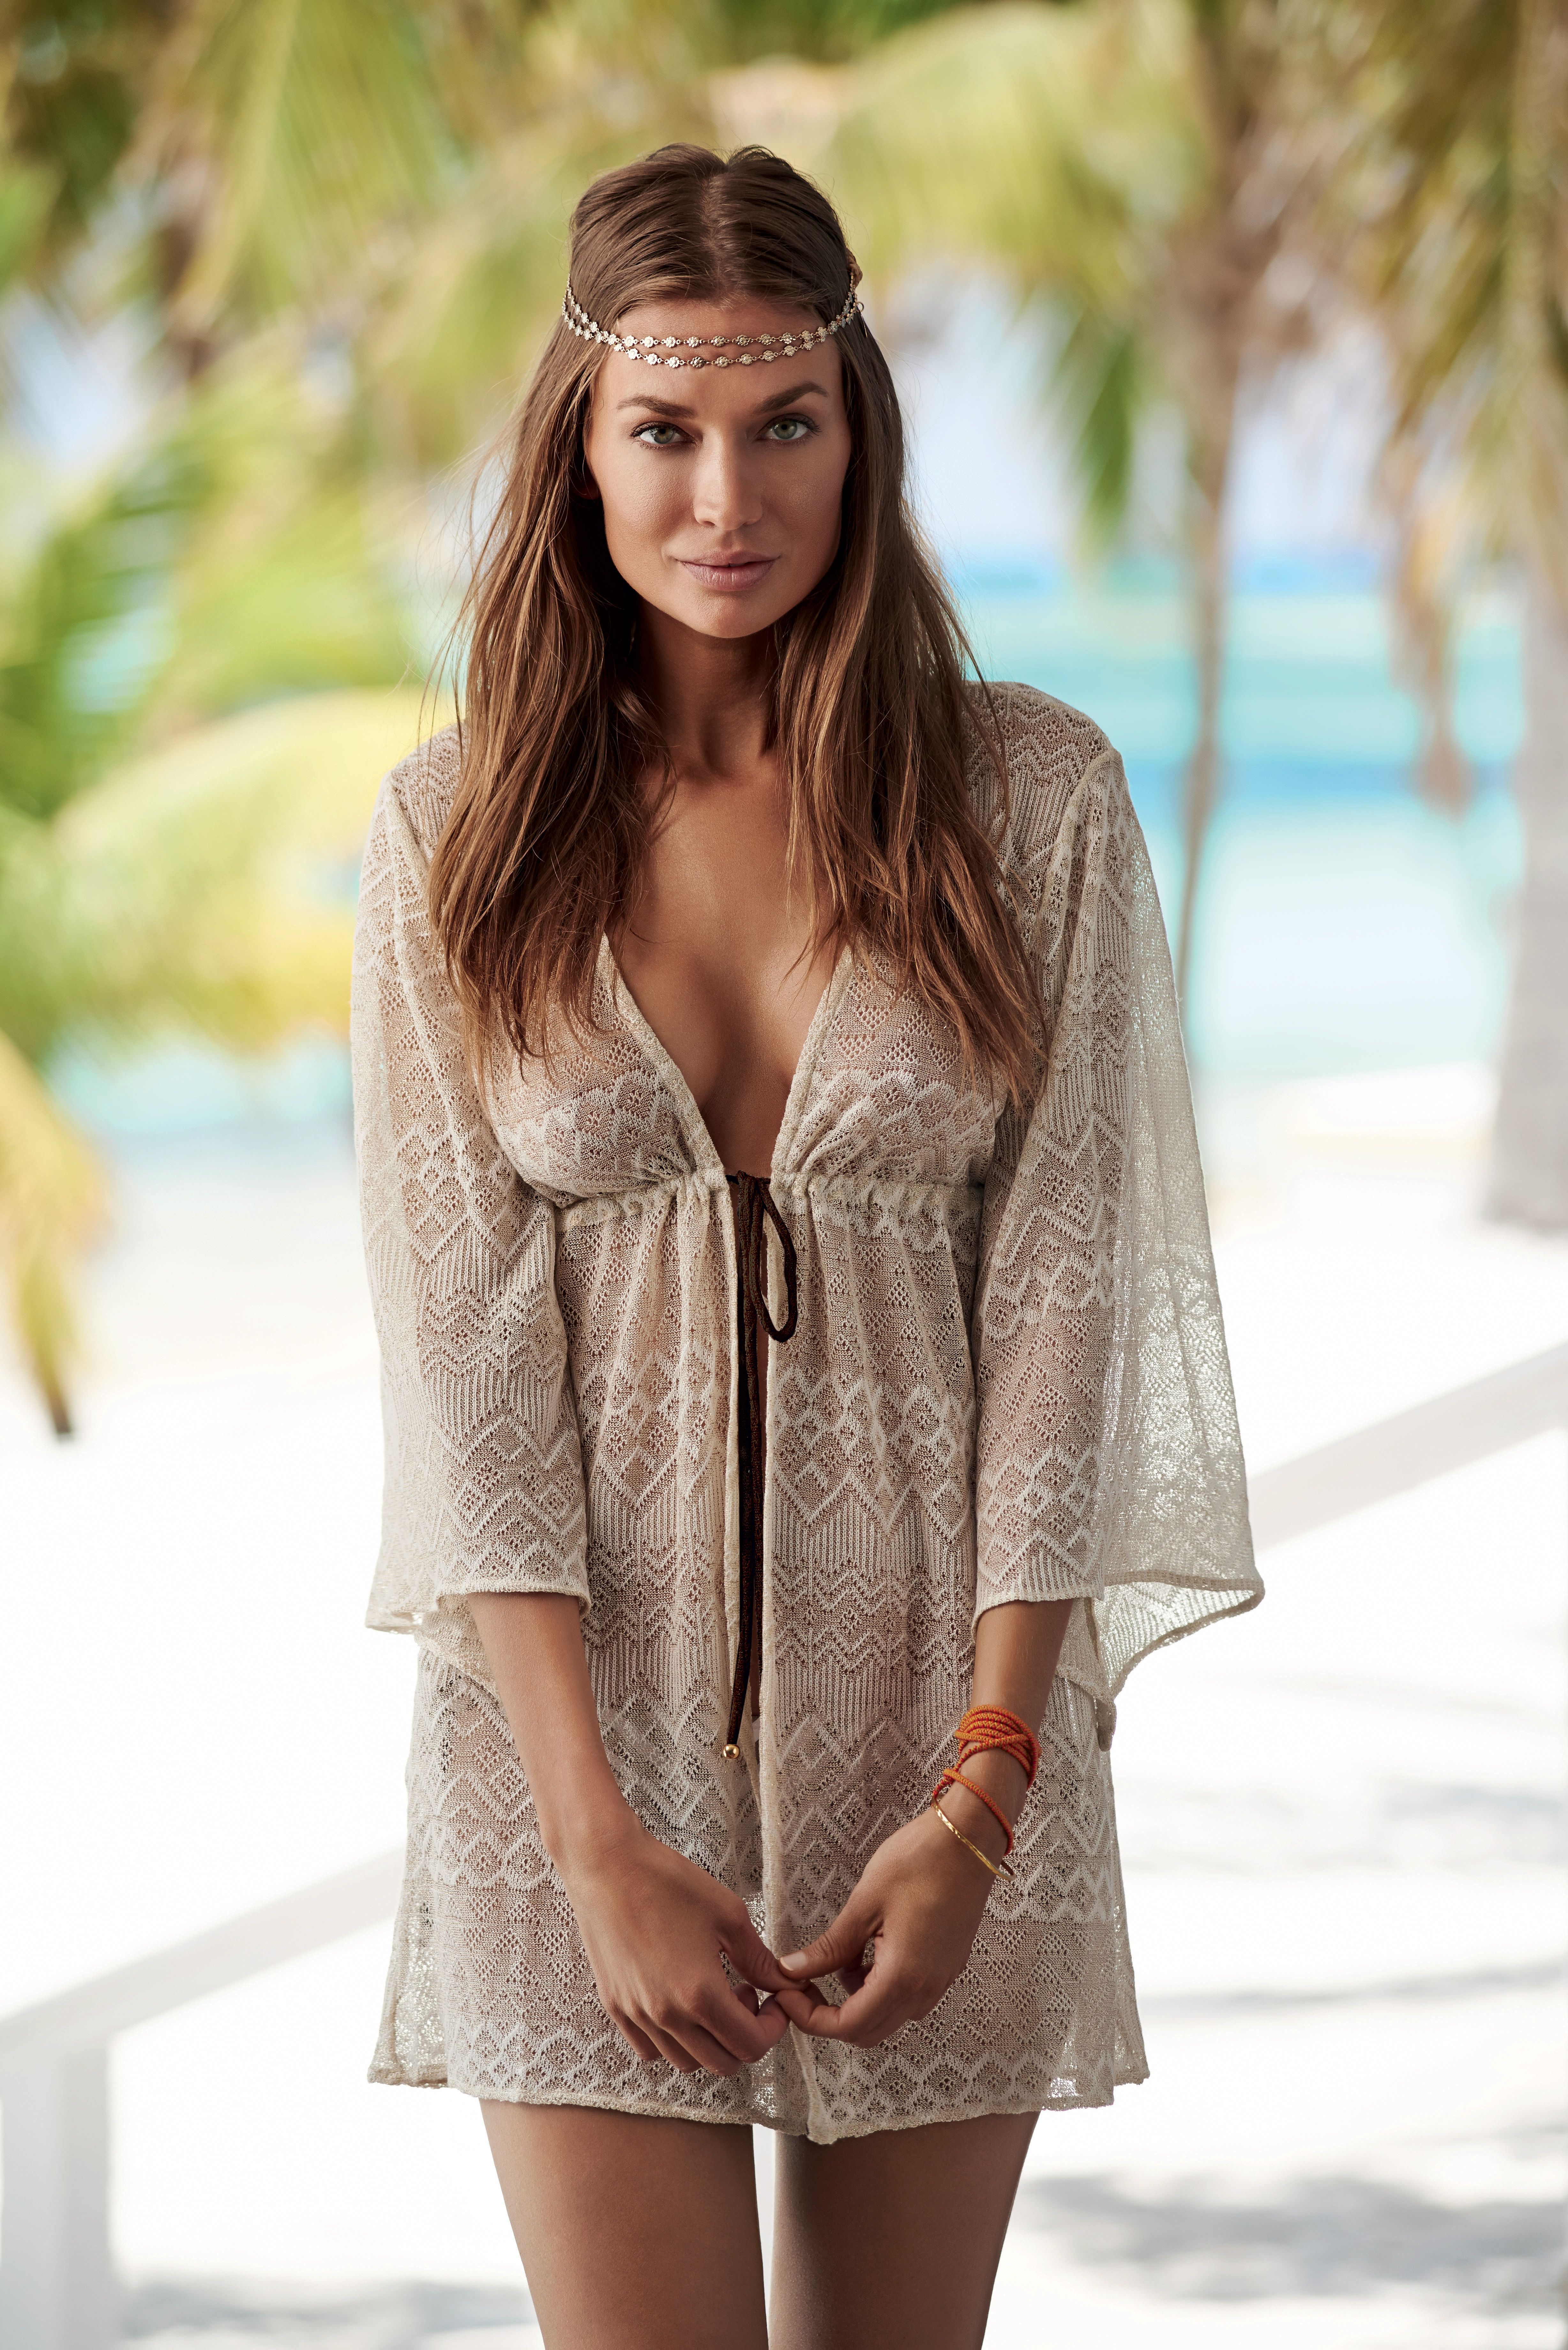 3b63136ac916f Fashionable Swimsuit Cover-ups for Lounging Around in Style